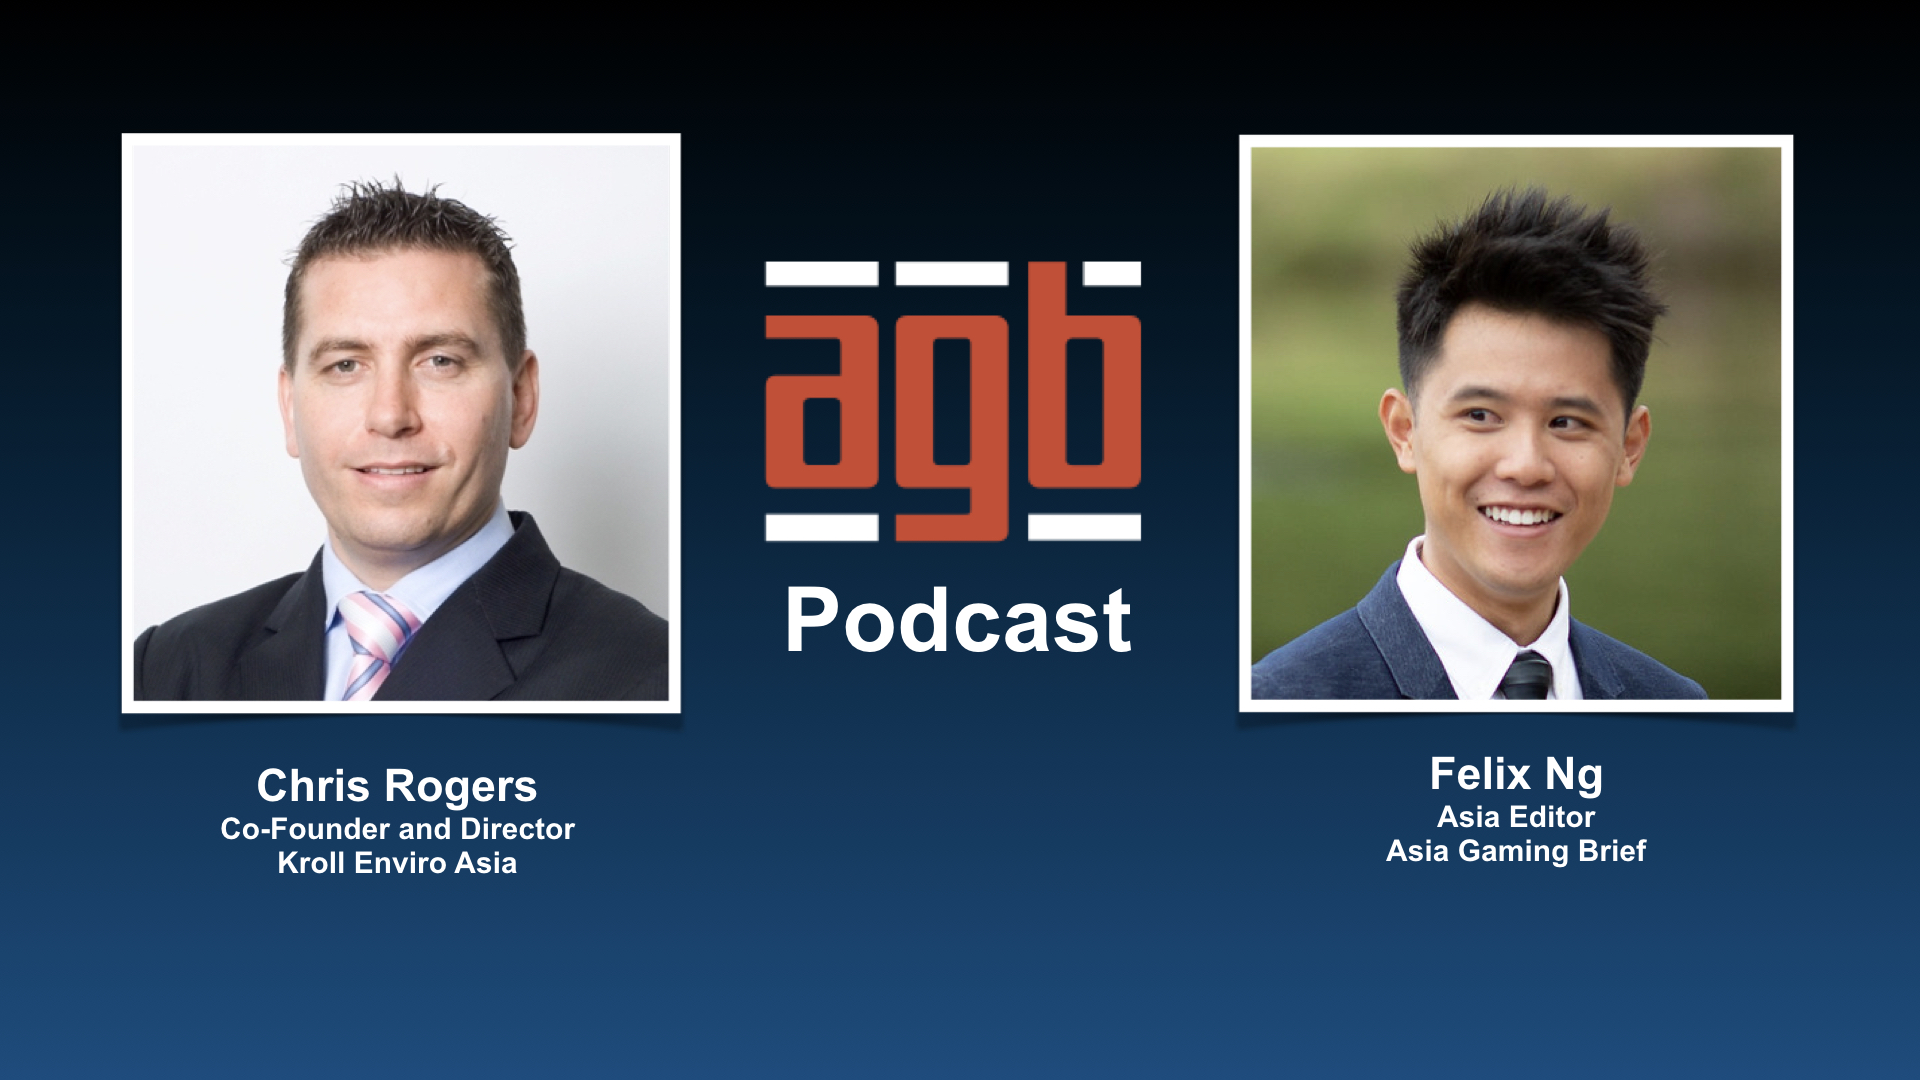 AGB podcast with Chris Rogers